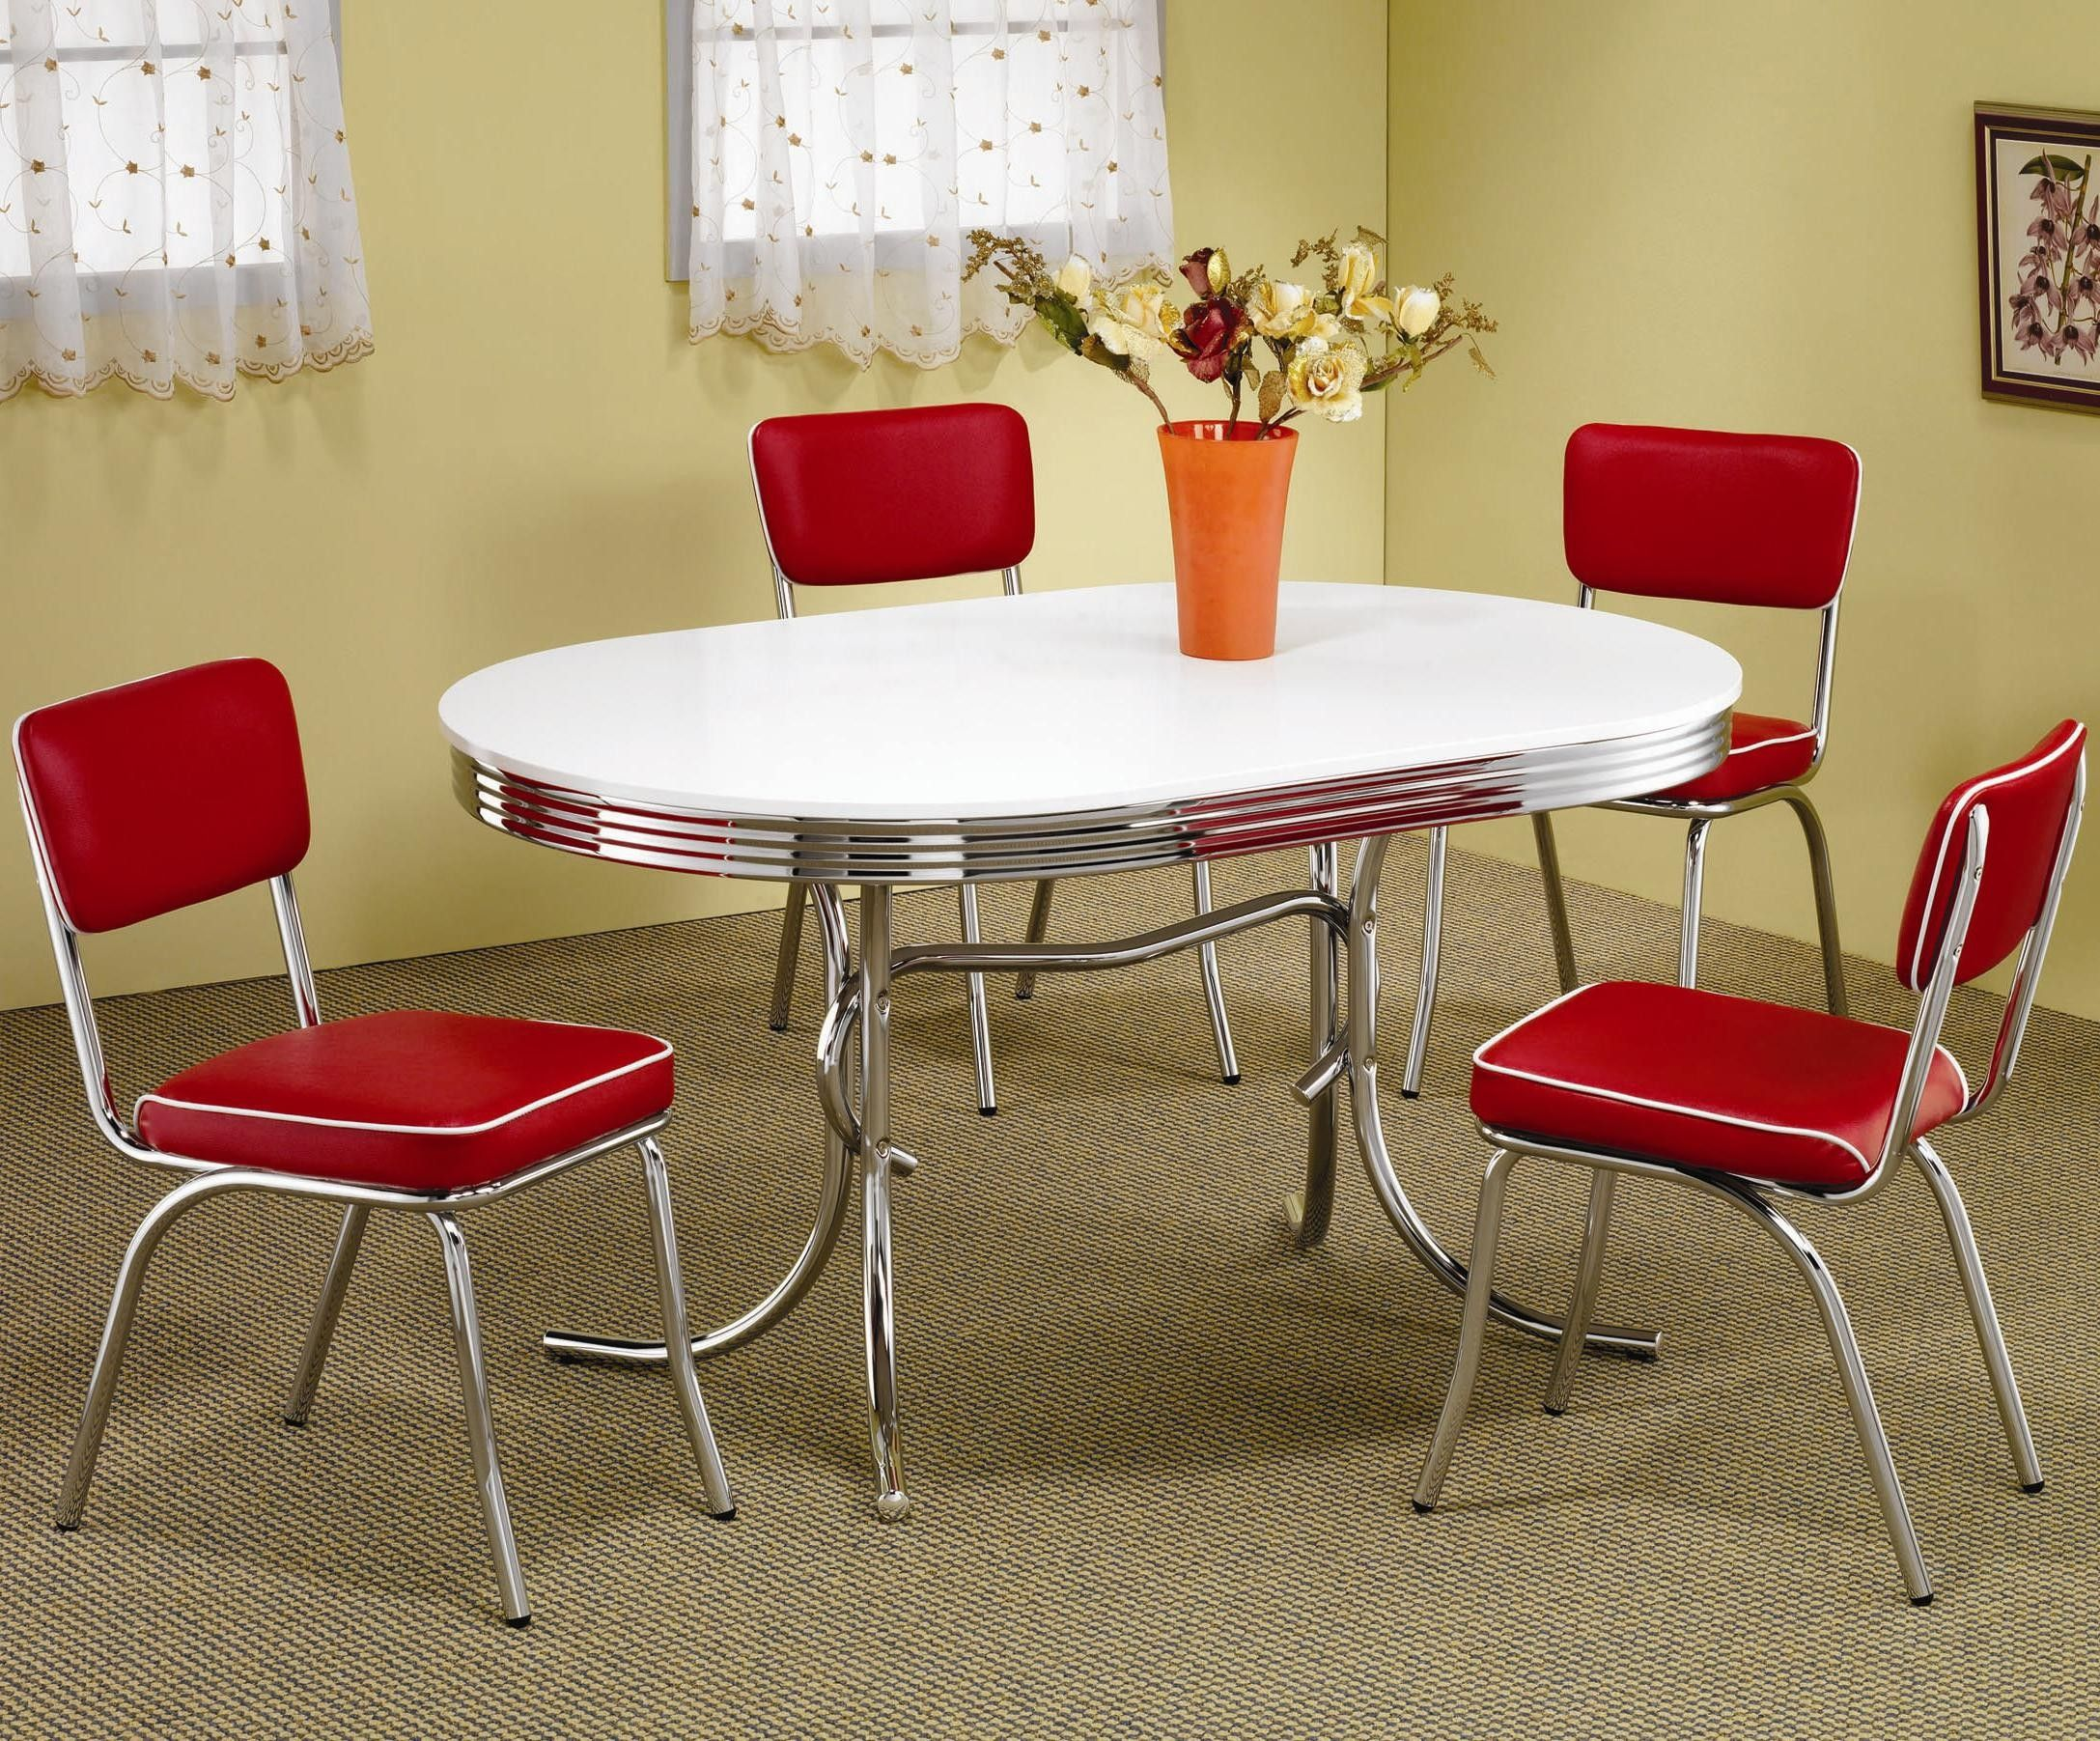 Carlin Retro 5 Piece Oval Dining Set WHITE/RED #Apt2BLabor